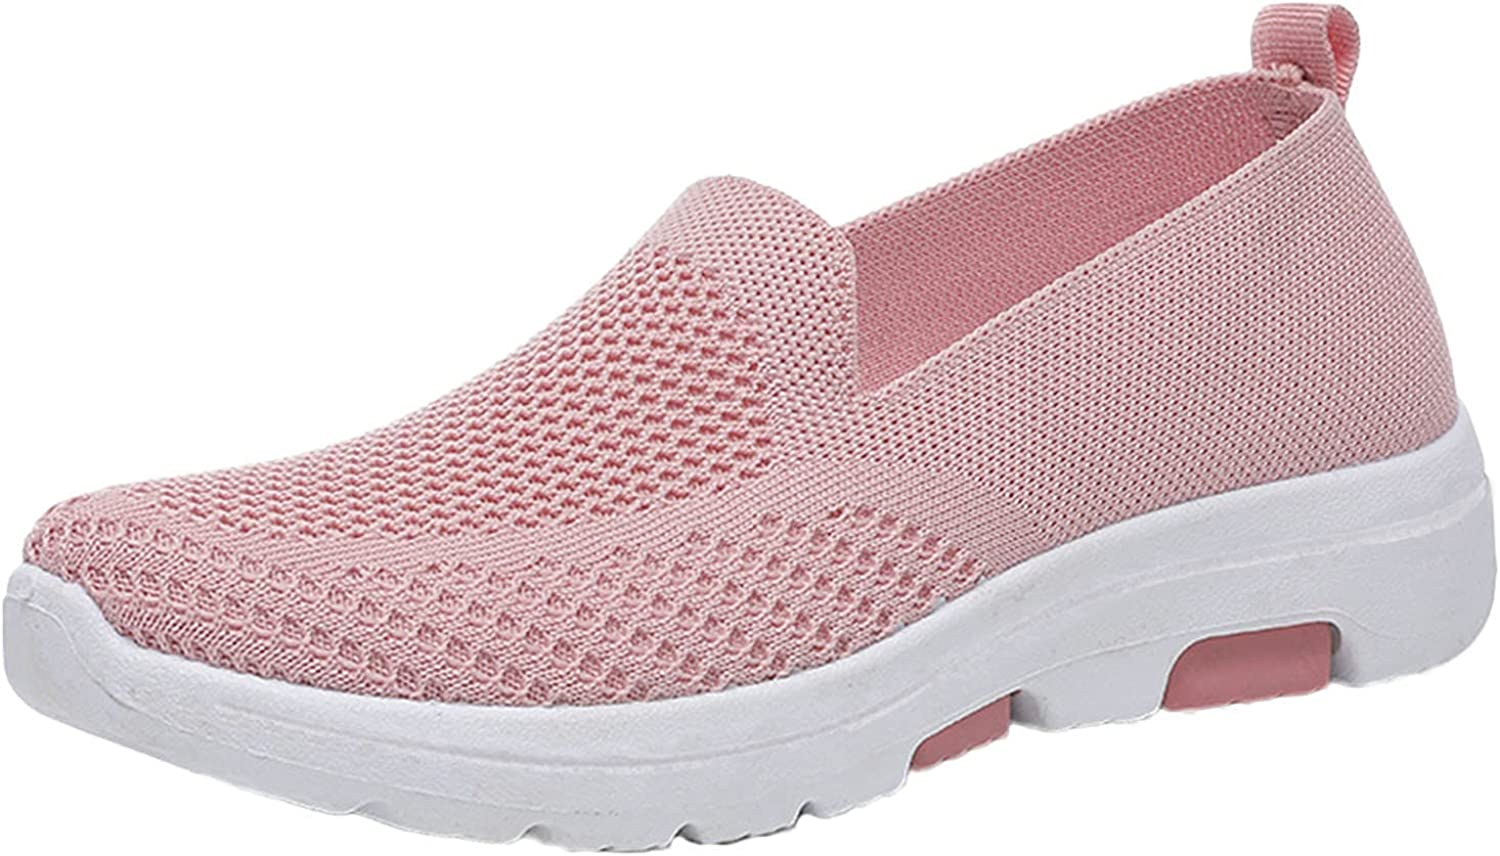 Women's Loafers & Slip-Ons Womens Canvas Shoes Play Sneakers Slip on Fashion Shoes Low Tops Casual Tennis Shoes Multicoloured